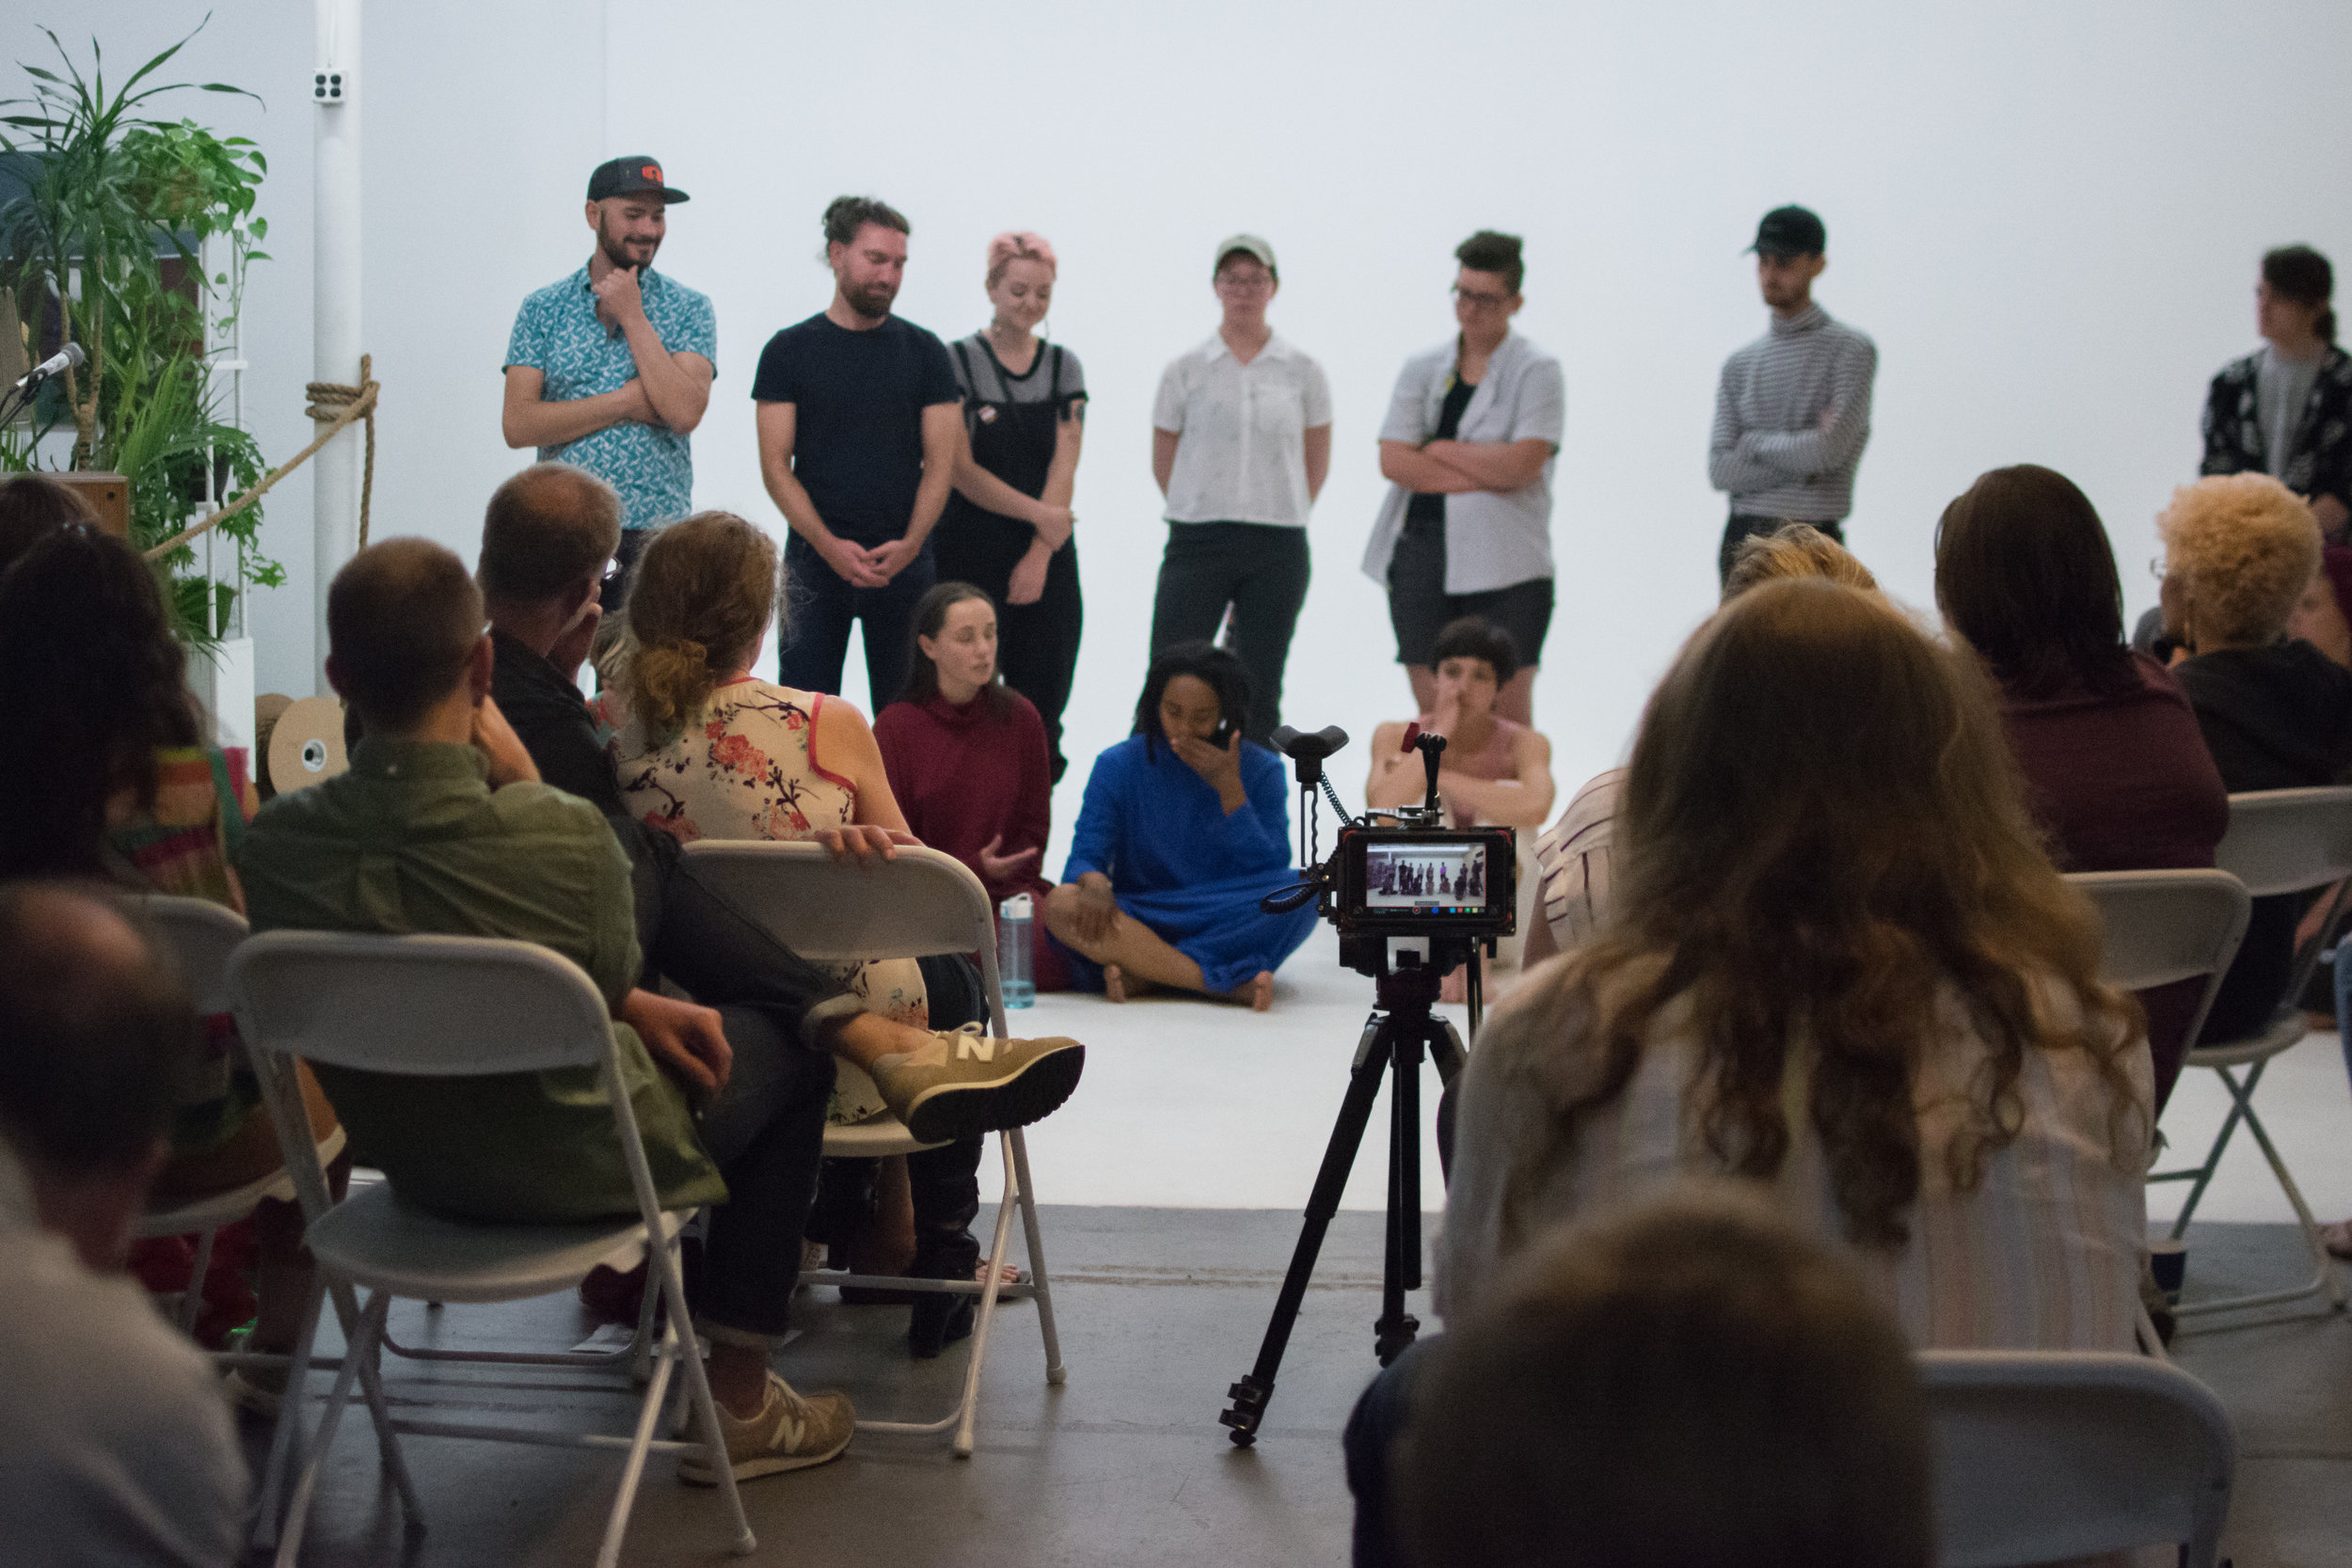 Performers in the Queer Spectra Arts Festival during a Q & A. Photo by Nora Lang.